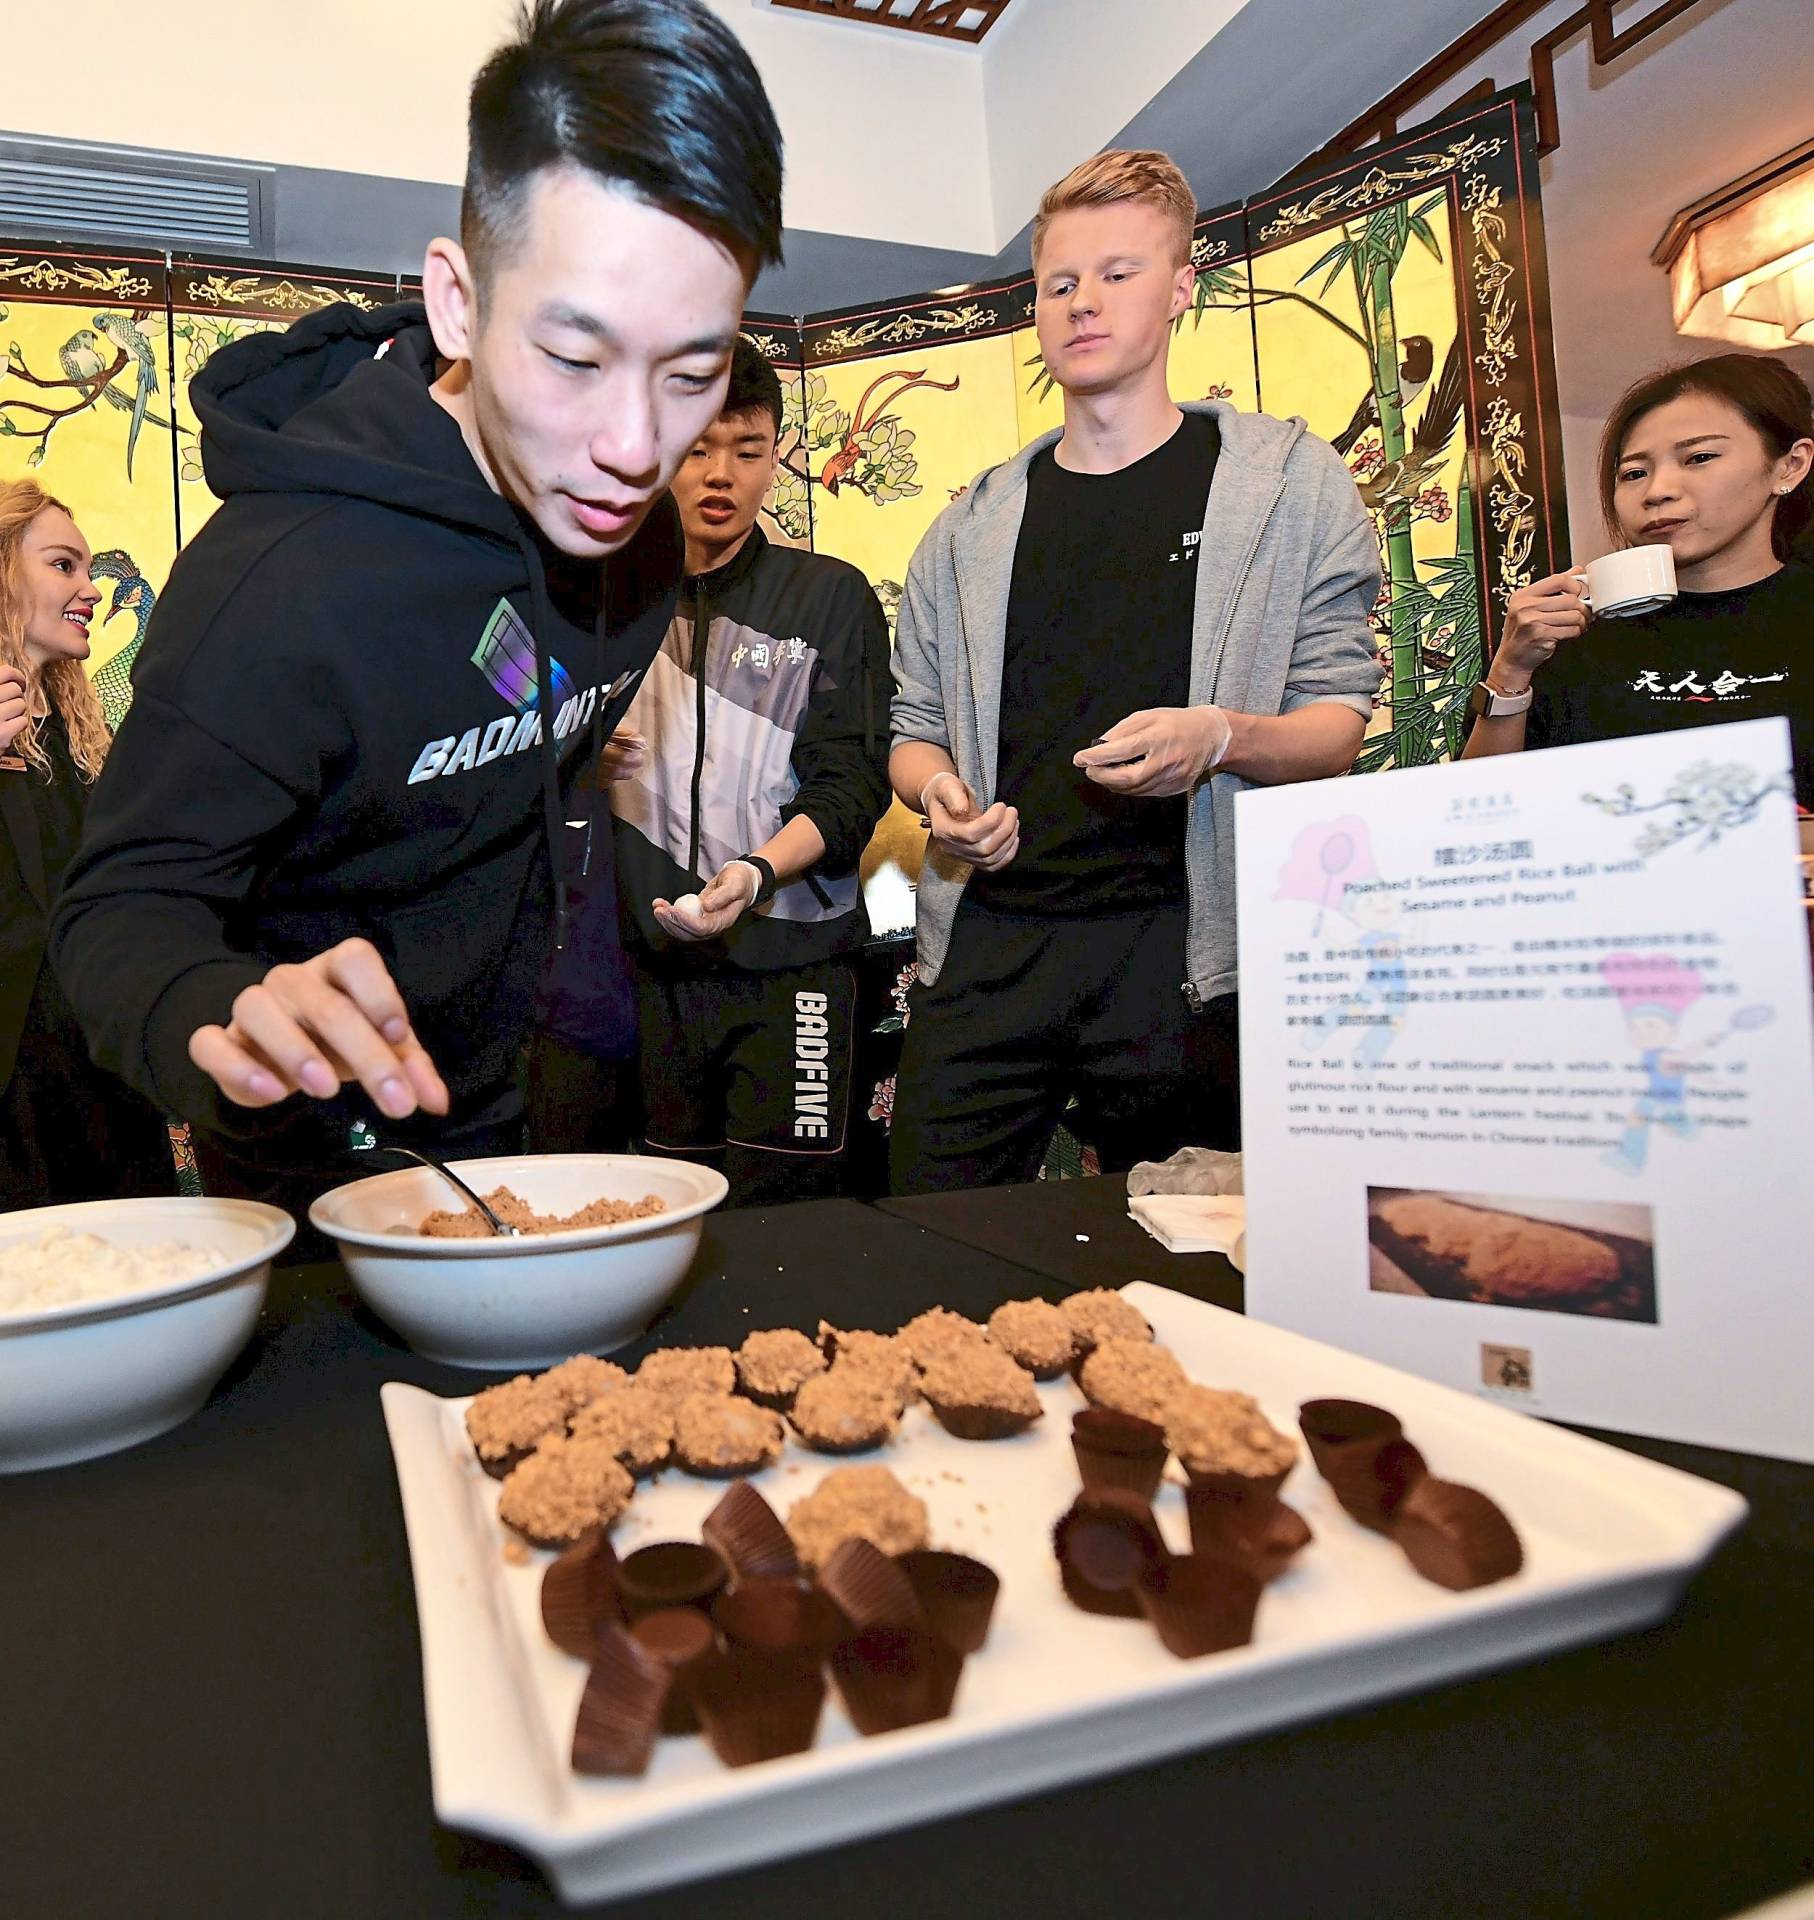 Chan Peng Soon checking out the good food.